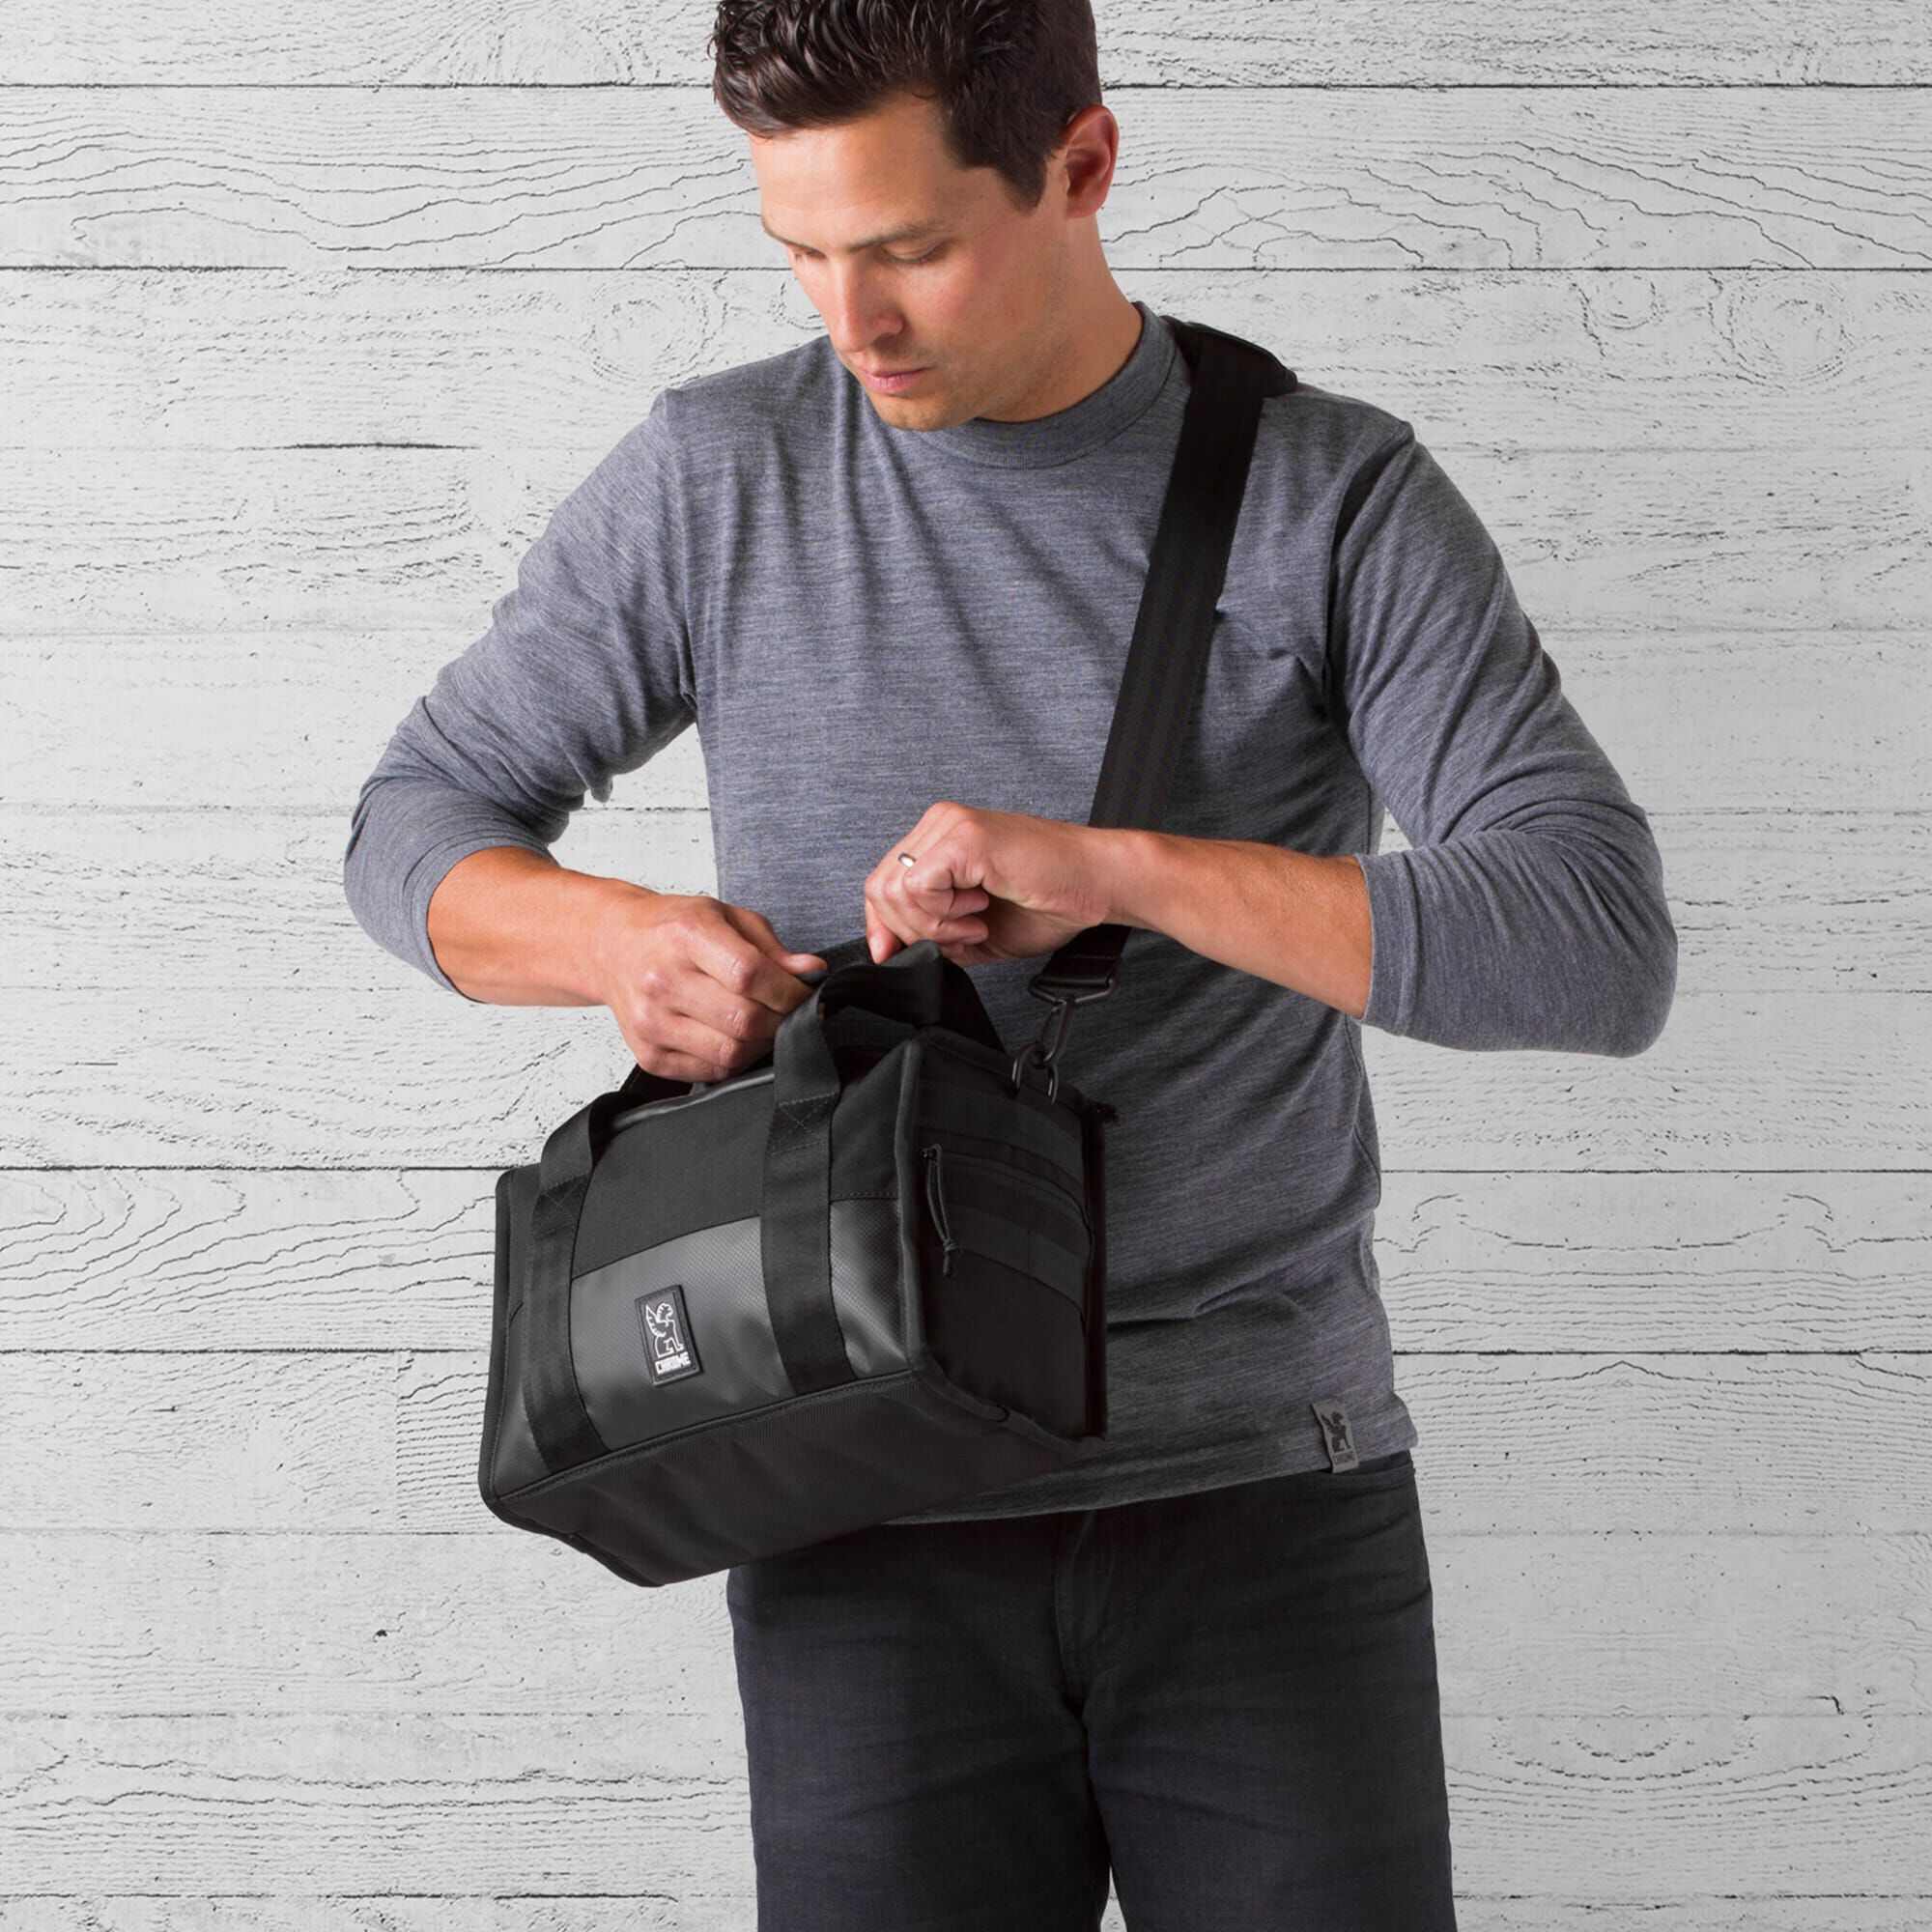 niko hold bag a bag built for the city 8 quot h x 11